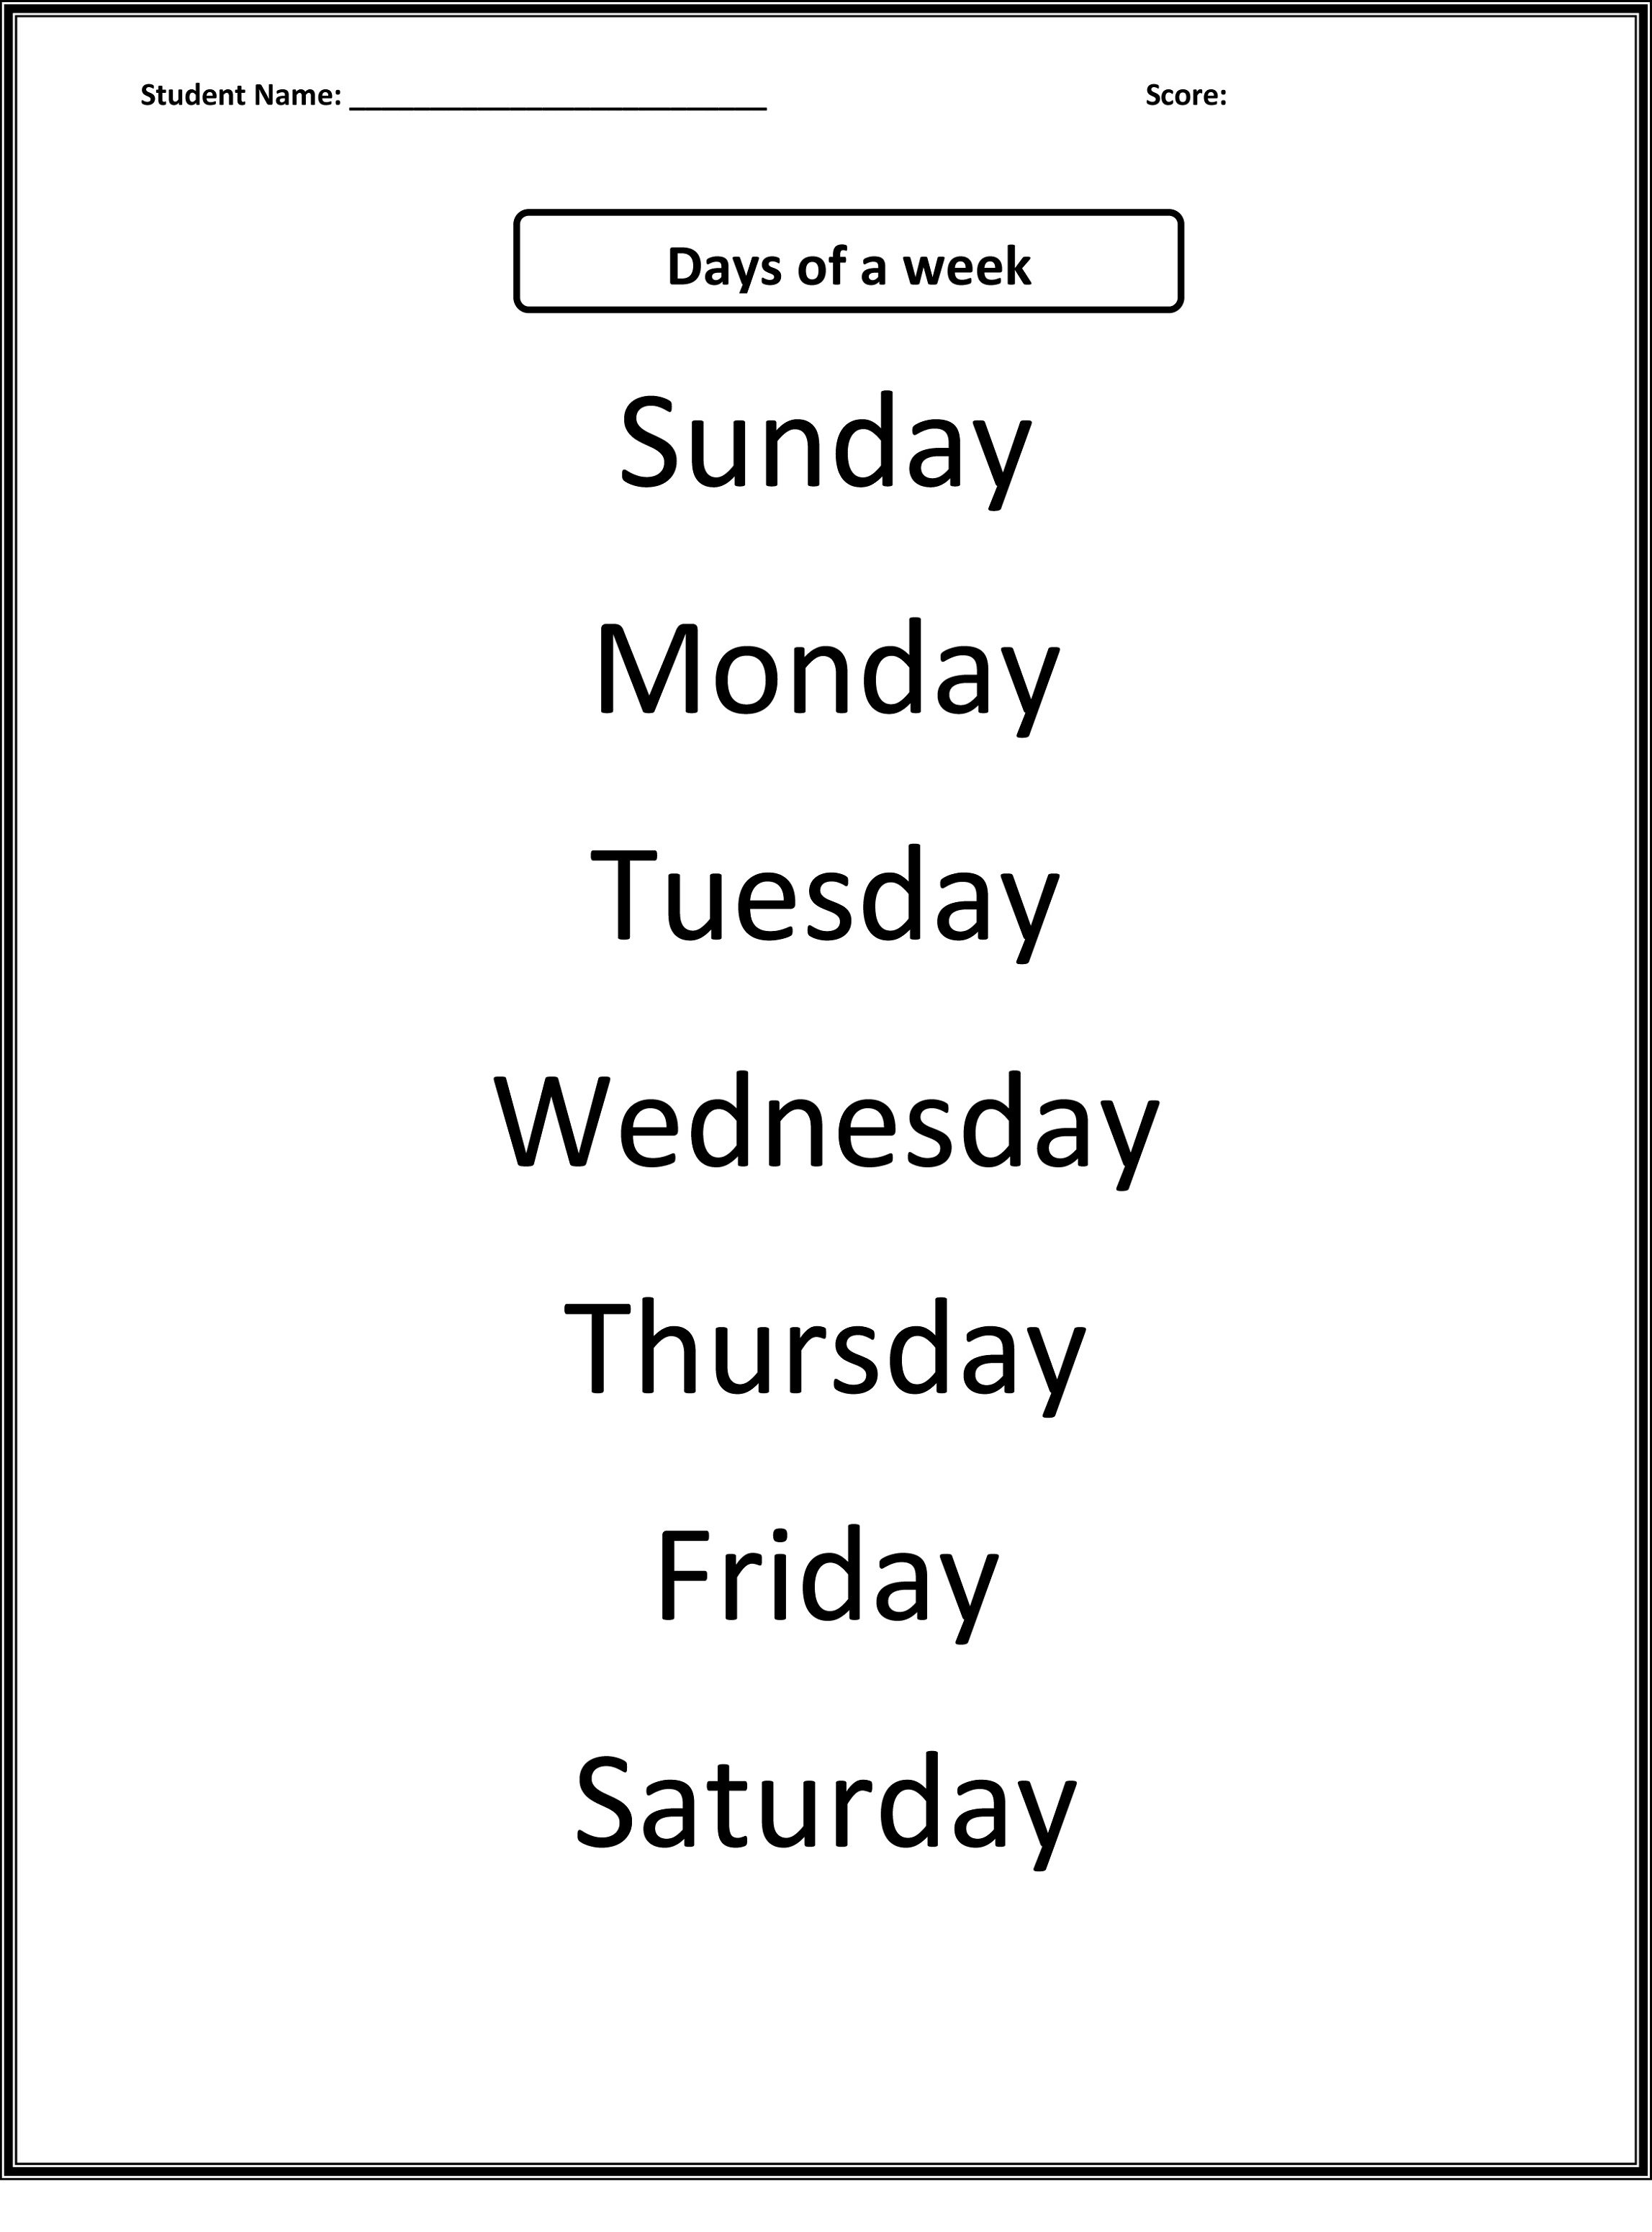 Worksheets for Days of the Week | Activity Shelter